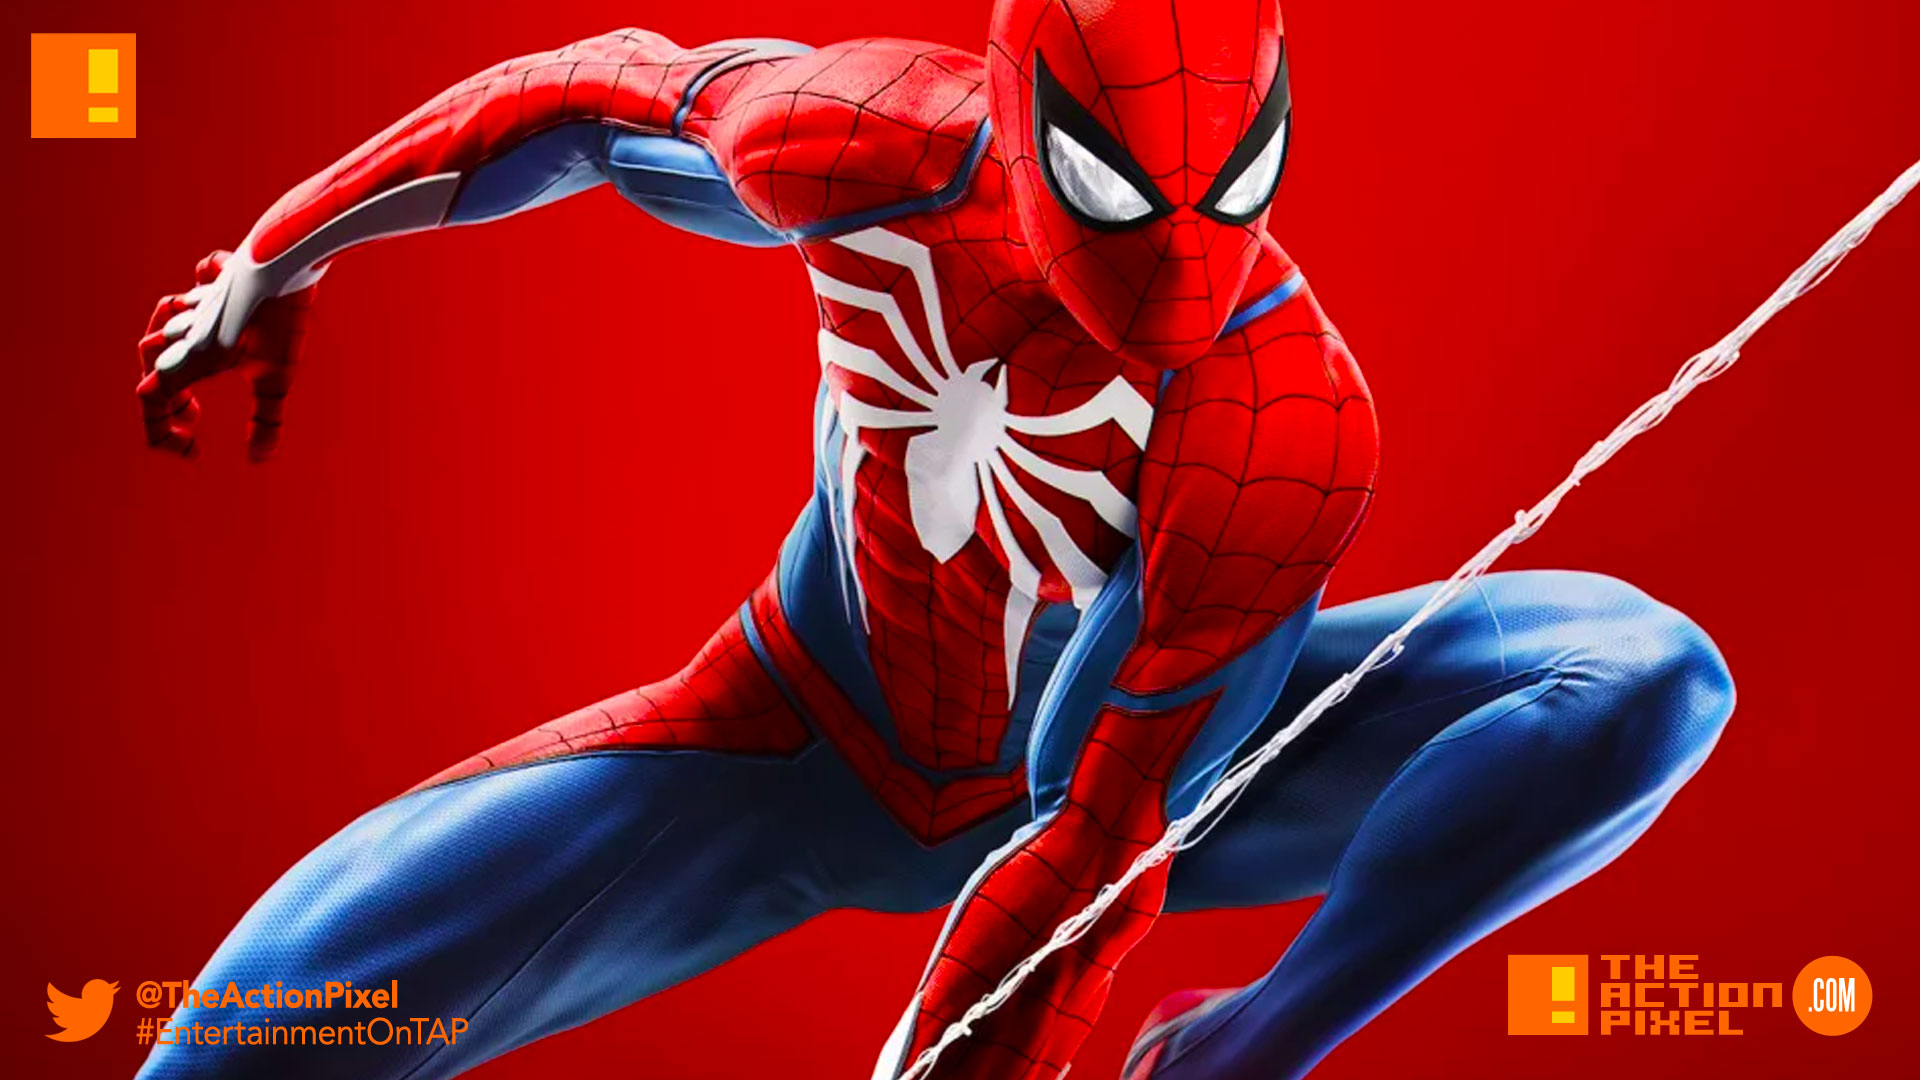 spider-man, marvel, marvel's spider-man,ps4,playstation 4, playstation, peter parker, demons, wilson fisk, fisk, king pin, gameplay trailer, e3 , e3 2017, electronic entertainment expo, marvel comics,the action pixel, entertainment on tap, insomniac games,